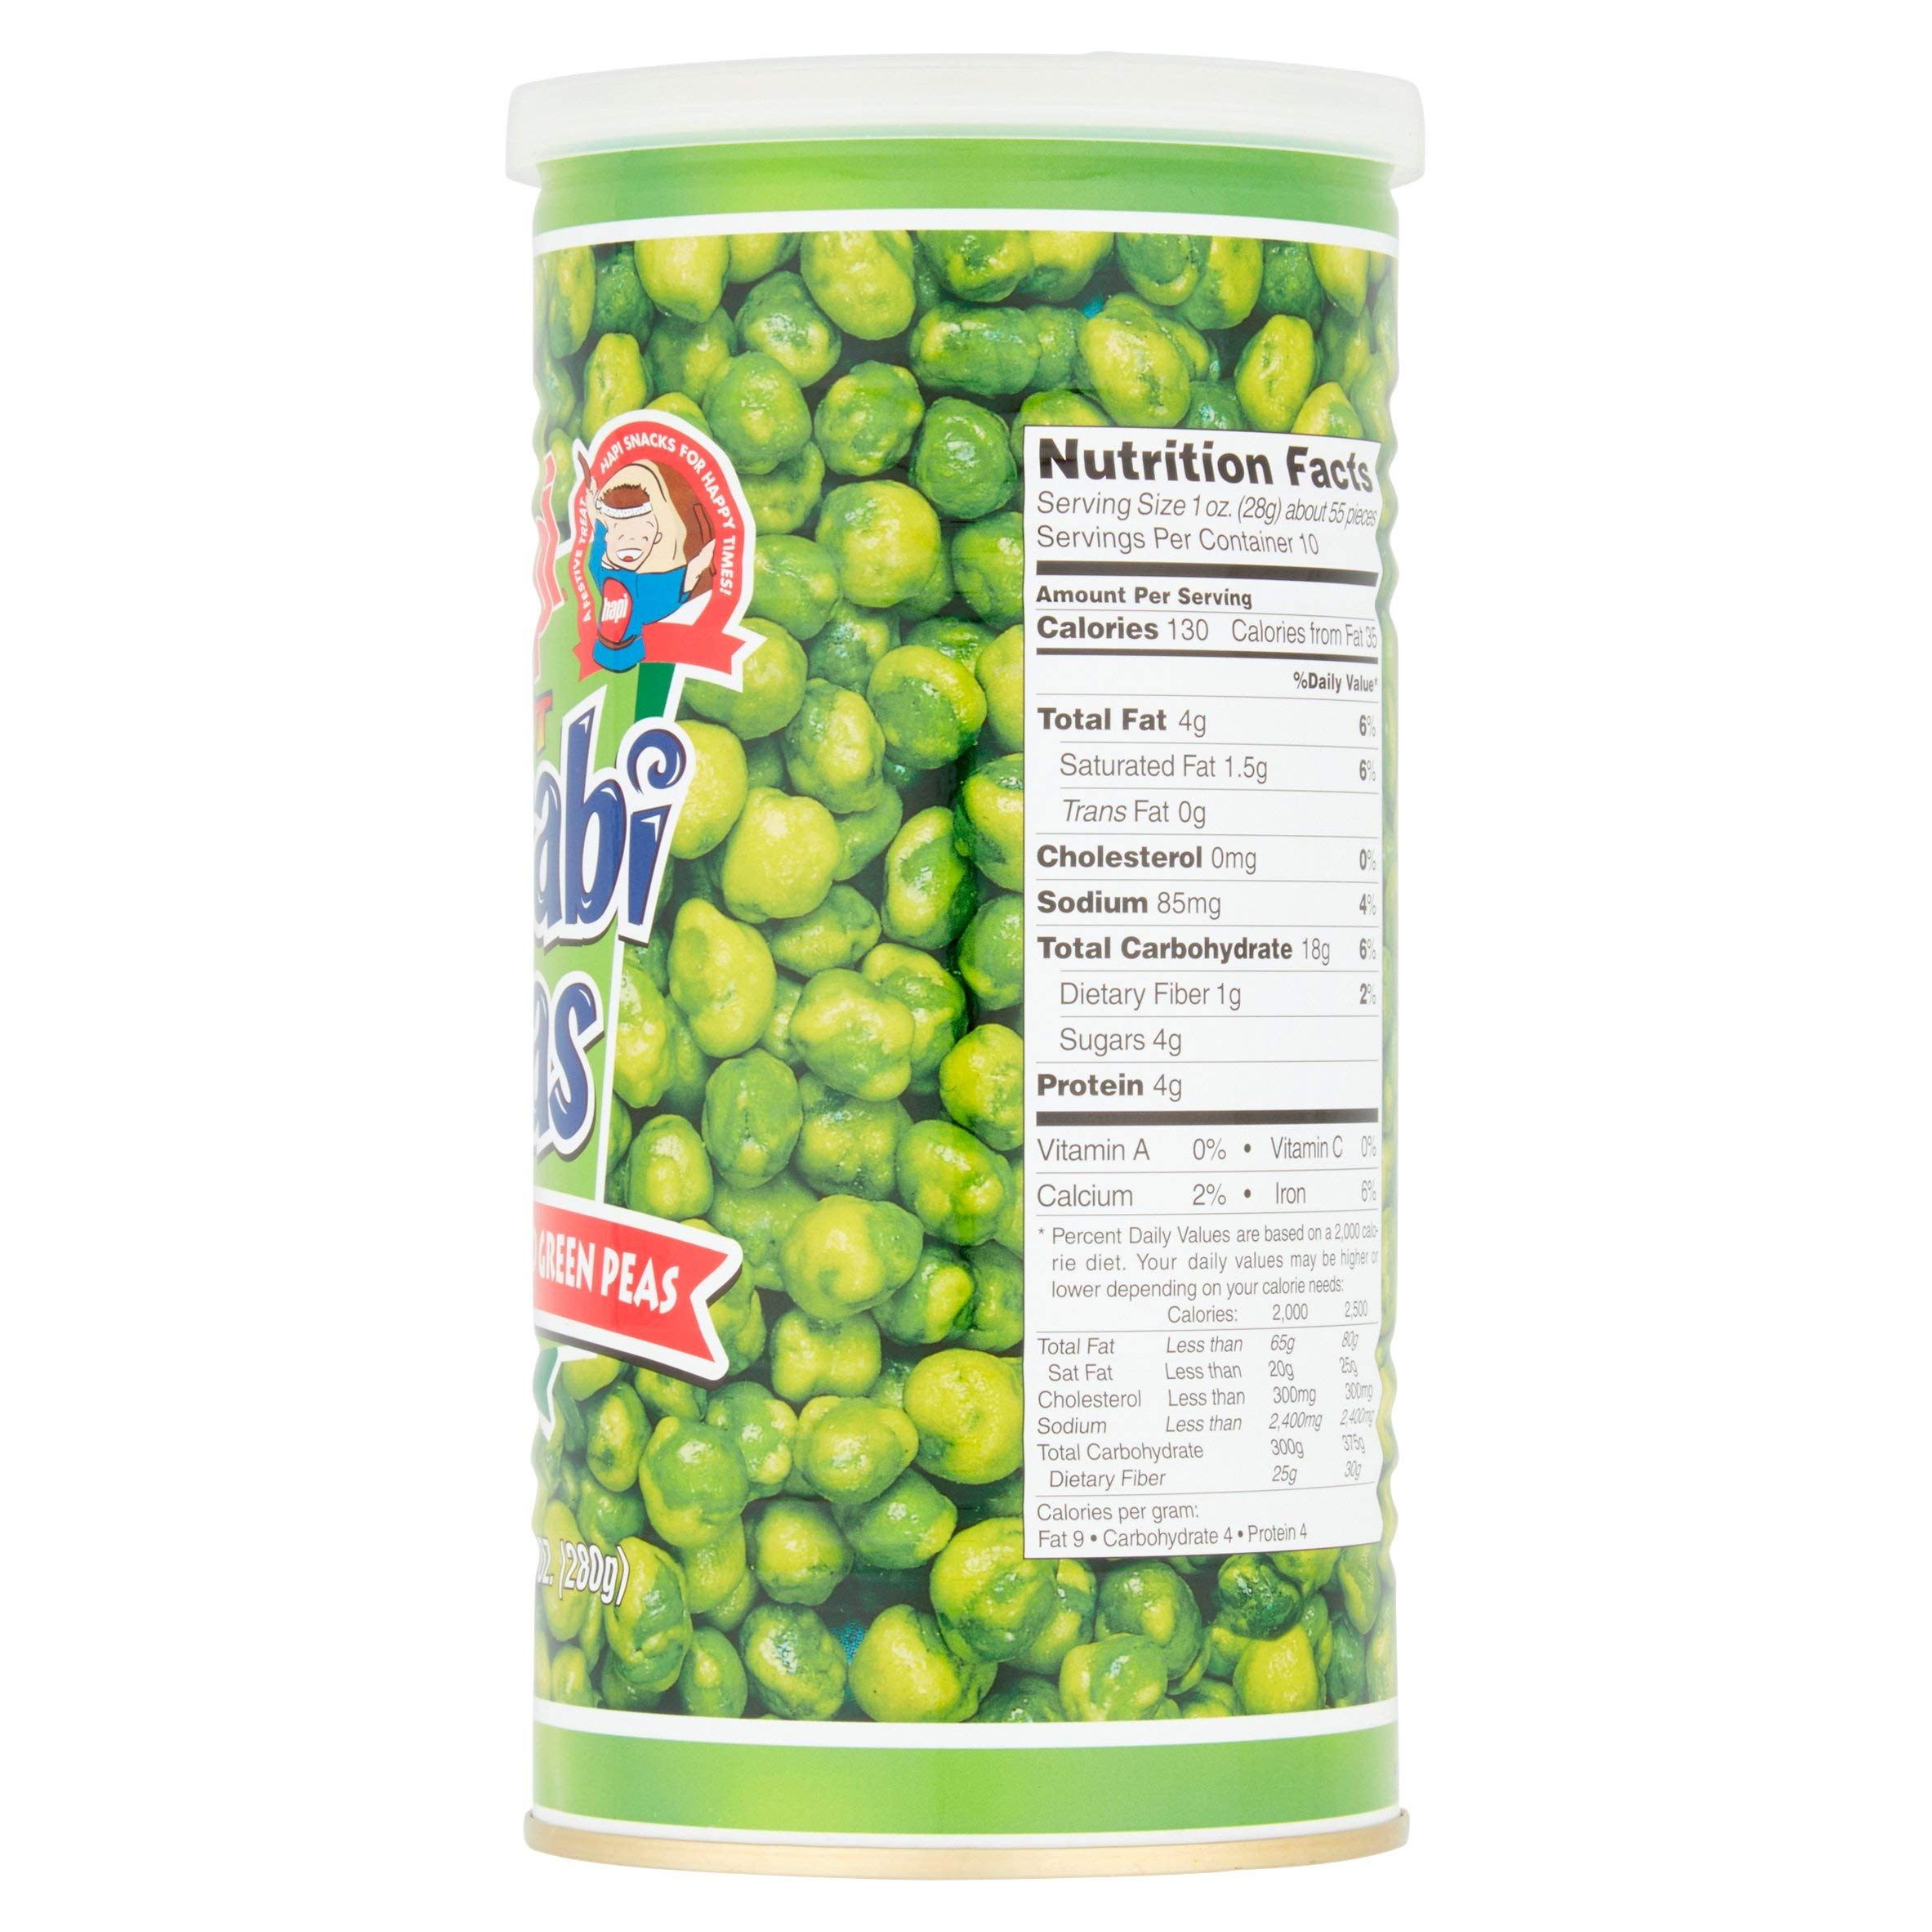 Hapi Snacks Hot Wasabi Peas 9.90oz - 3 Pack by HAPI (Image #1)